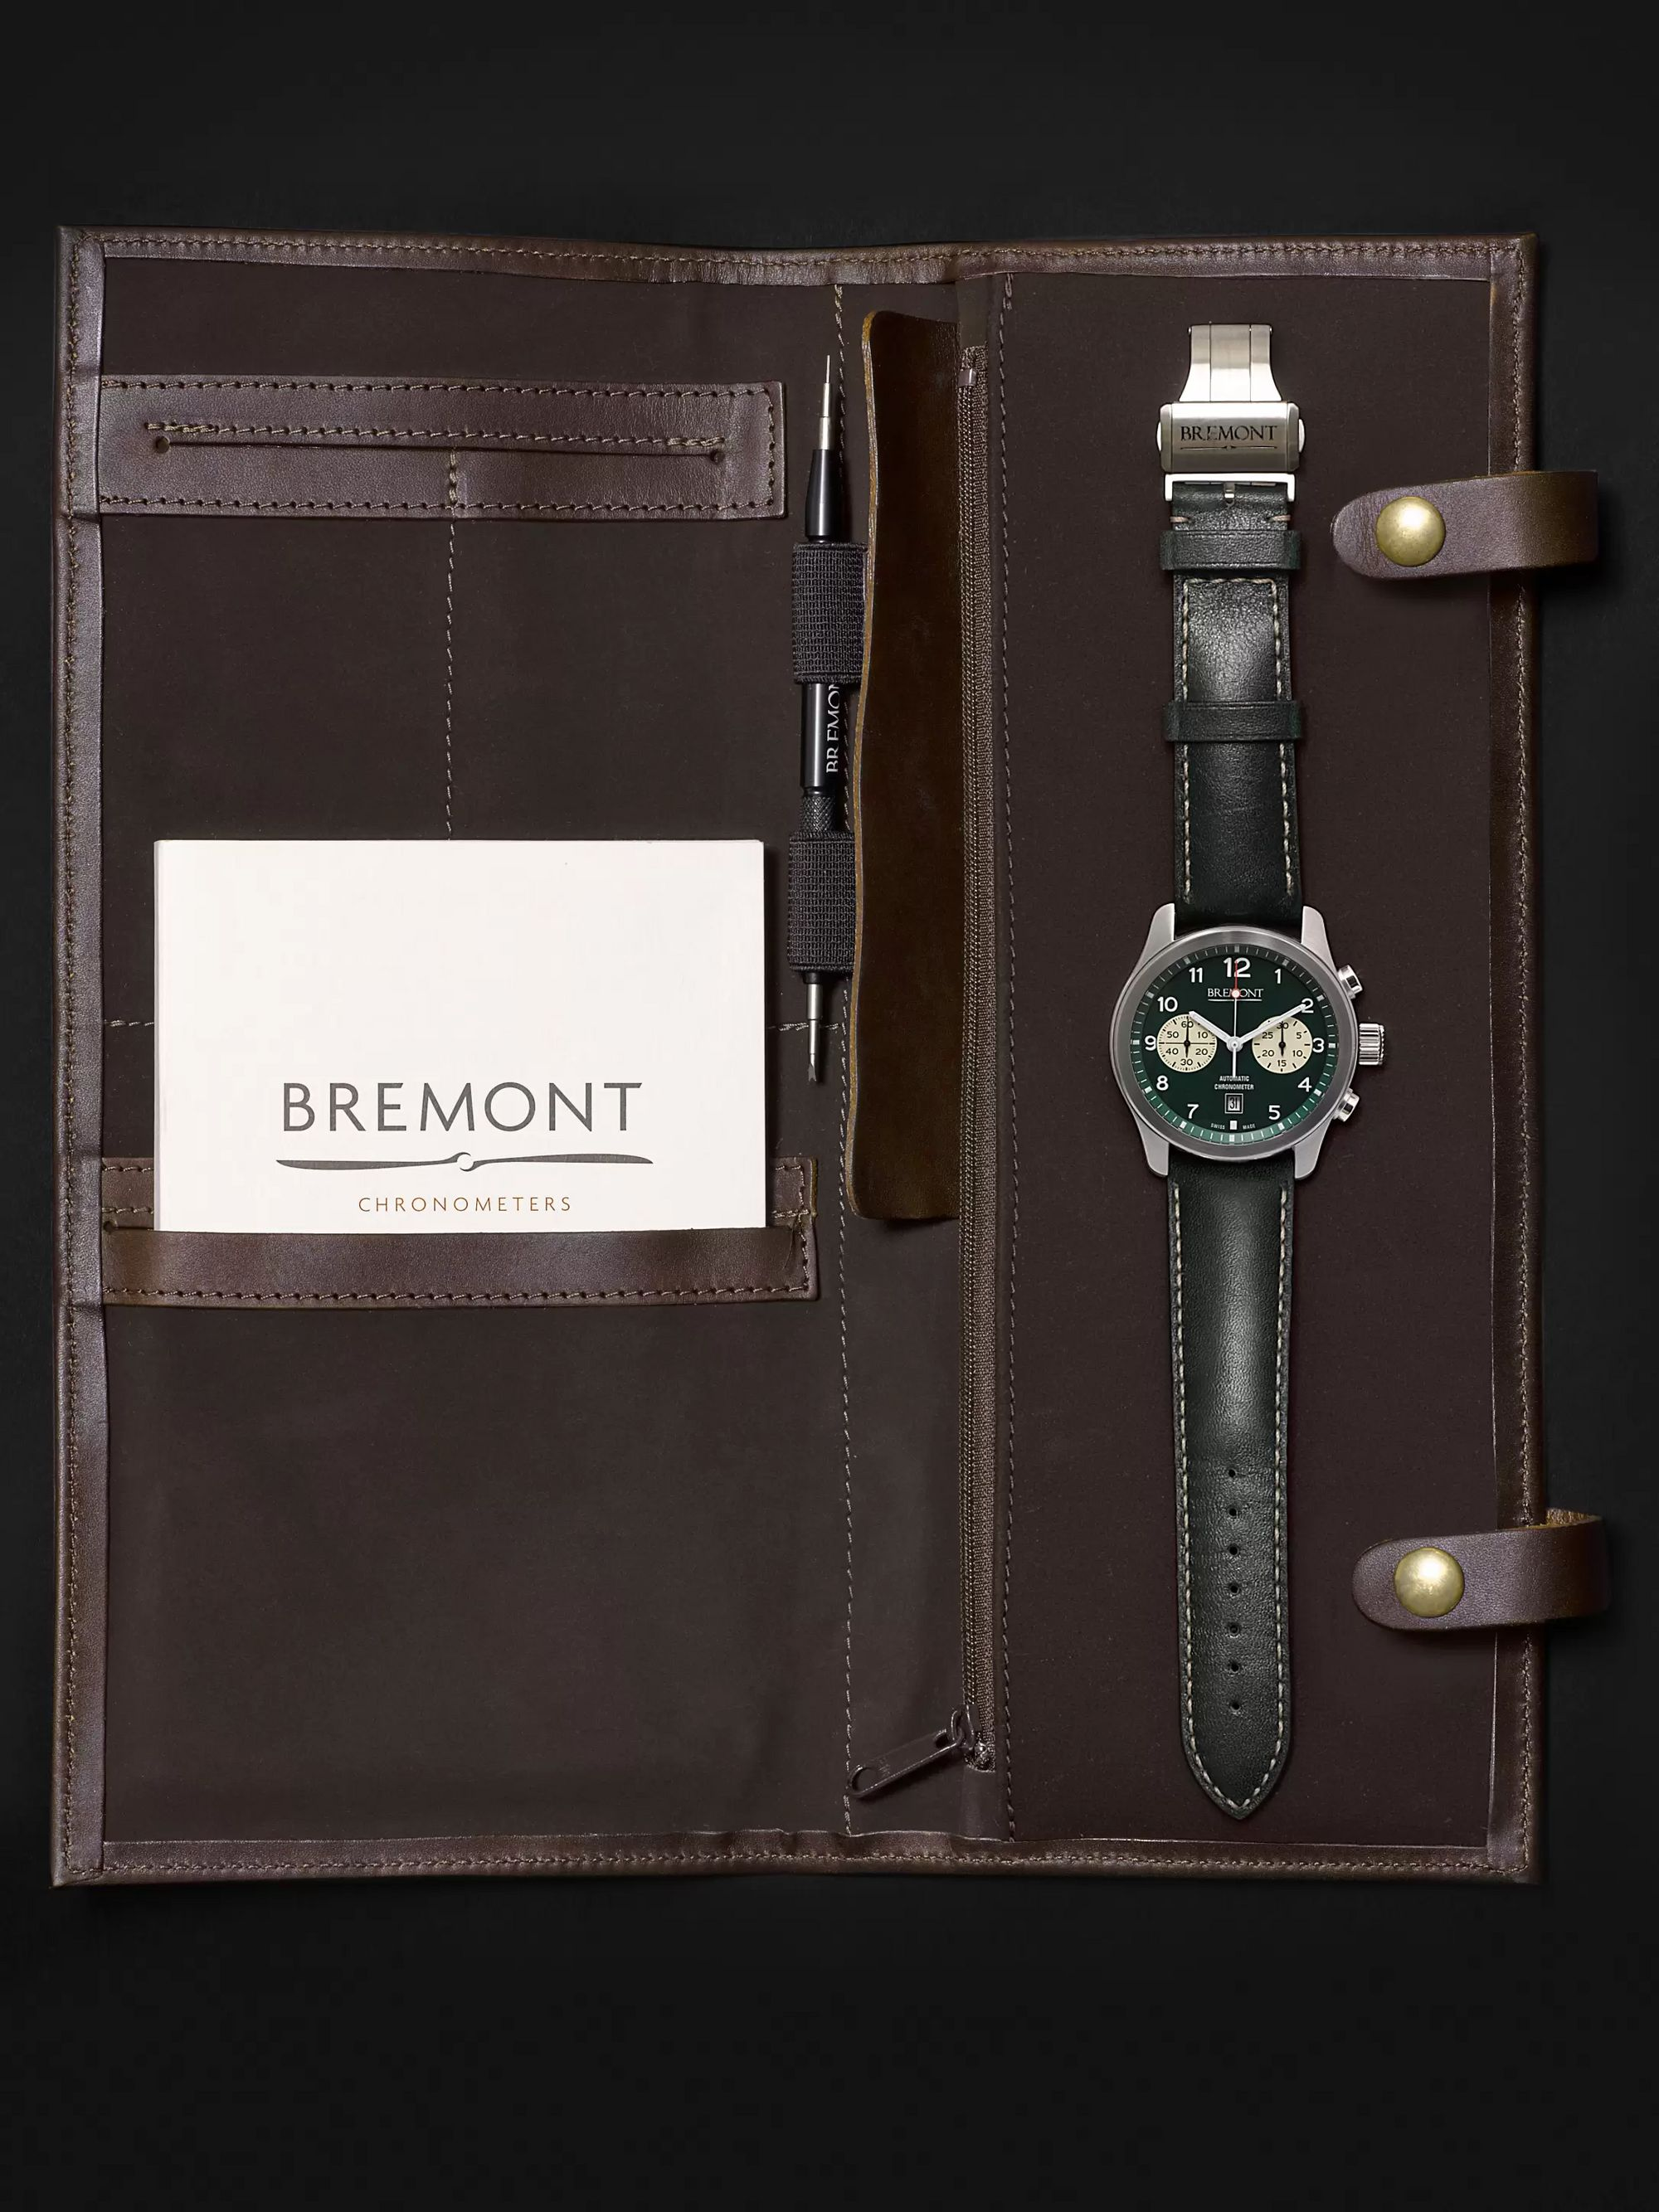 Bremont ALT1-Classic/GN Automatic Chronograph 43mm Stainless Steel and Leather Watch, Ref. No. ALT1-C/GN